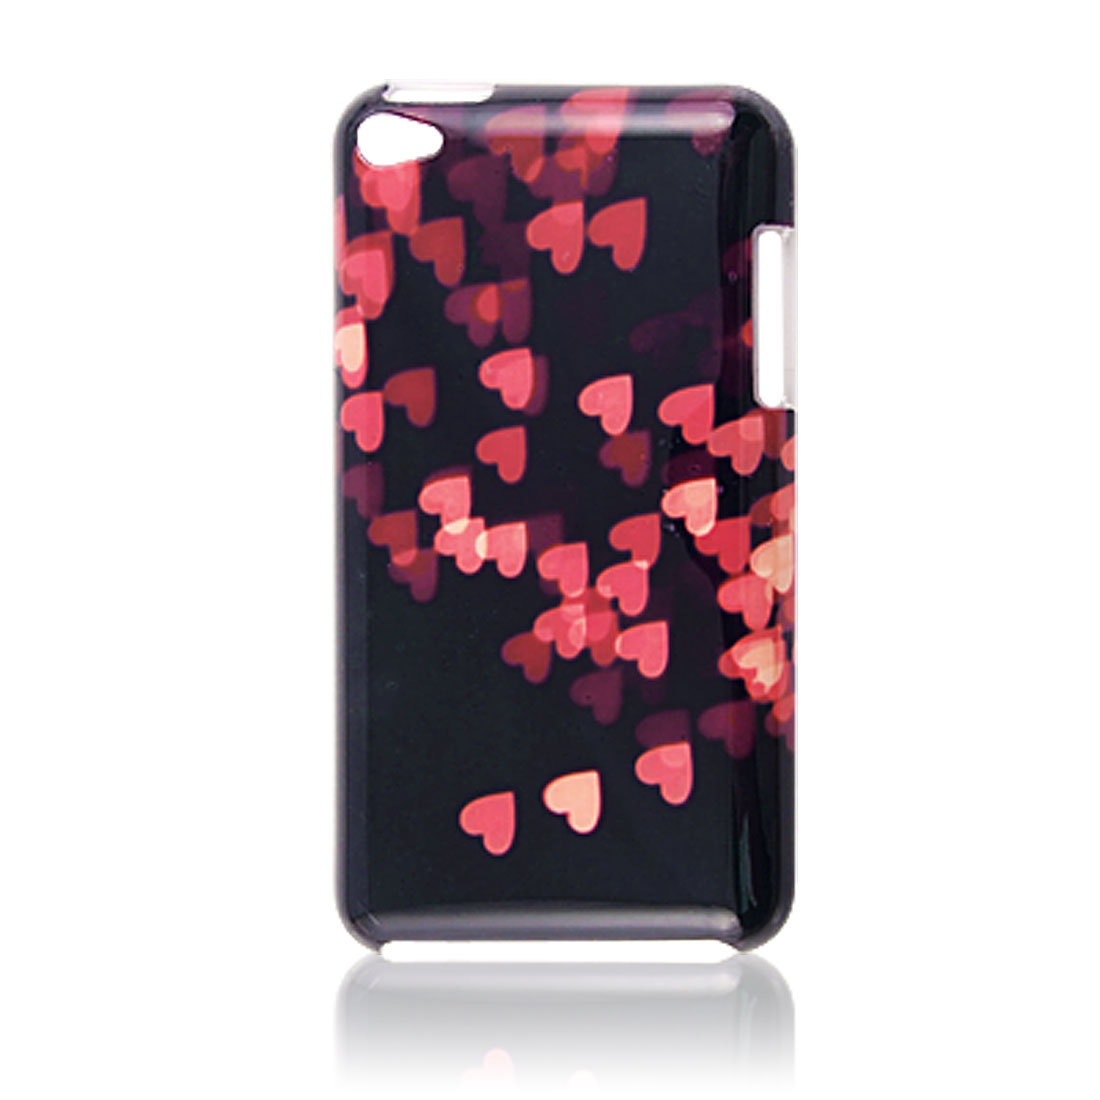 IMD Multi Red Hearts Print Plastic Back Cover for iPod Touch 4G